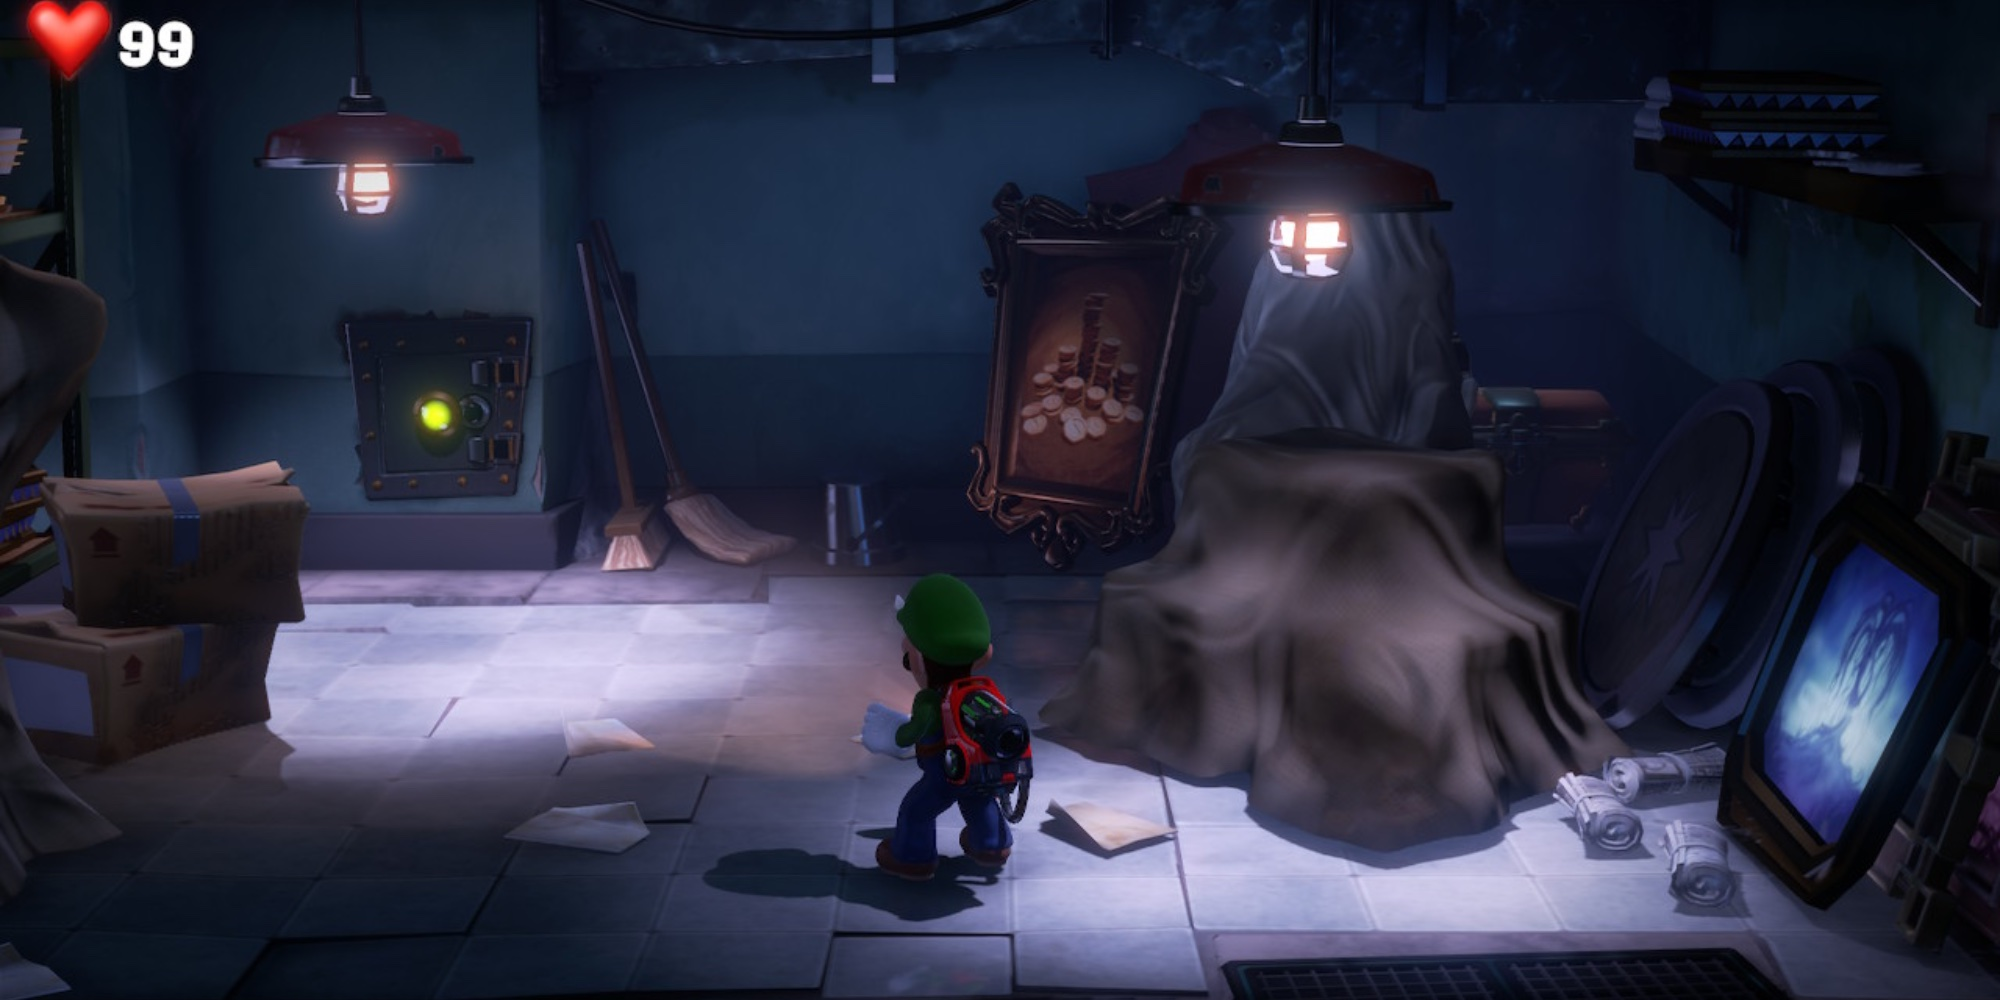 Luigi S Mansion 3 Review Satisfying Combat Shines And More